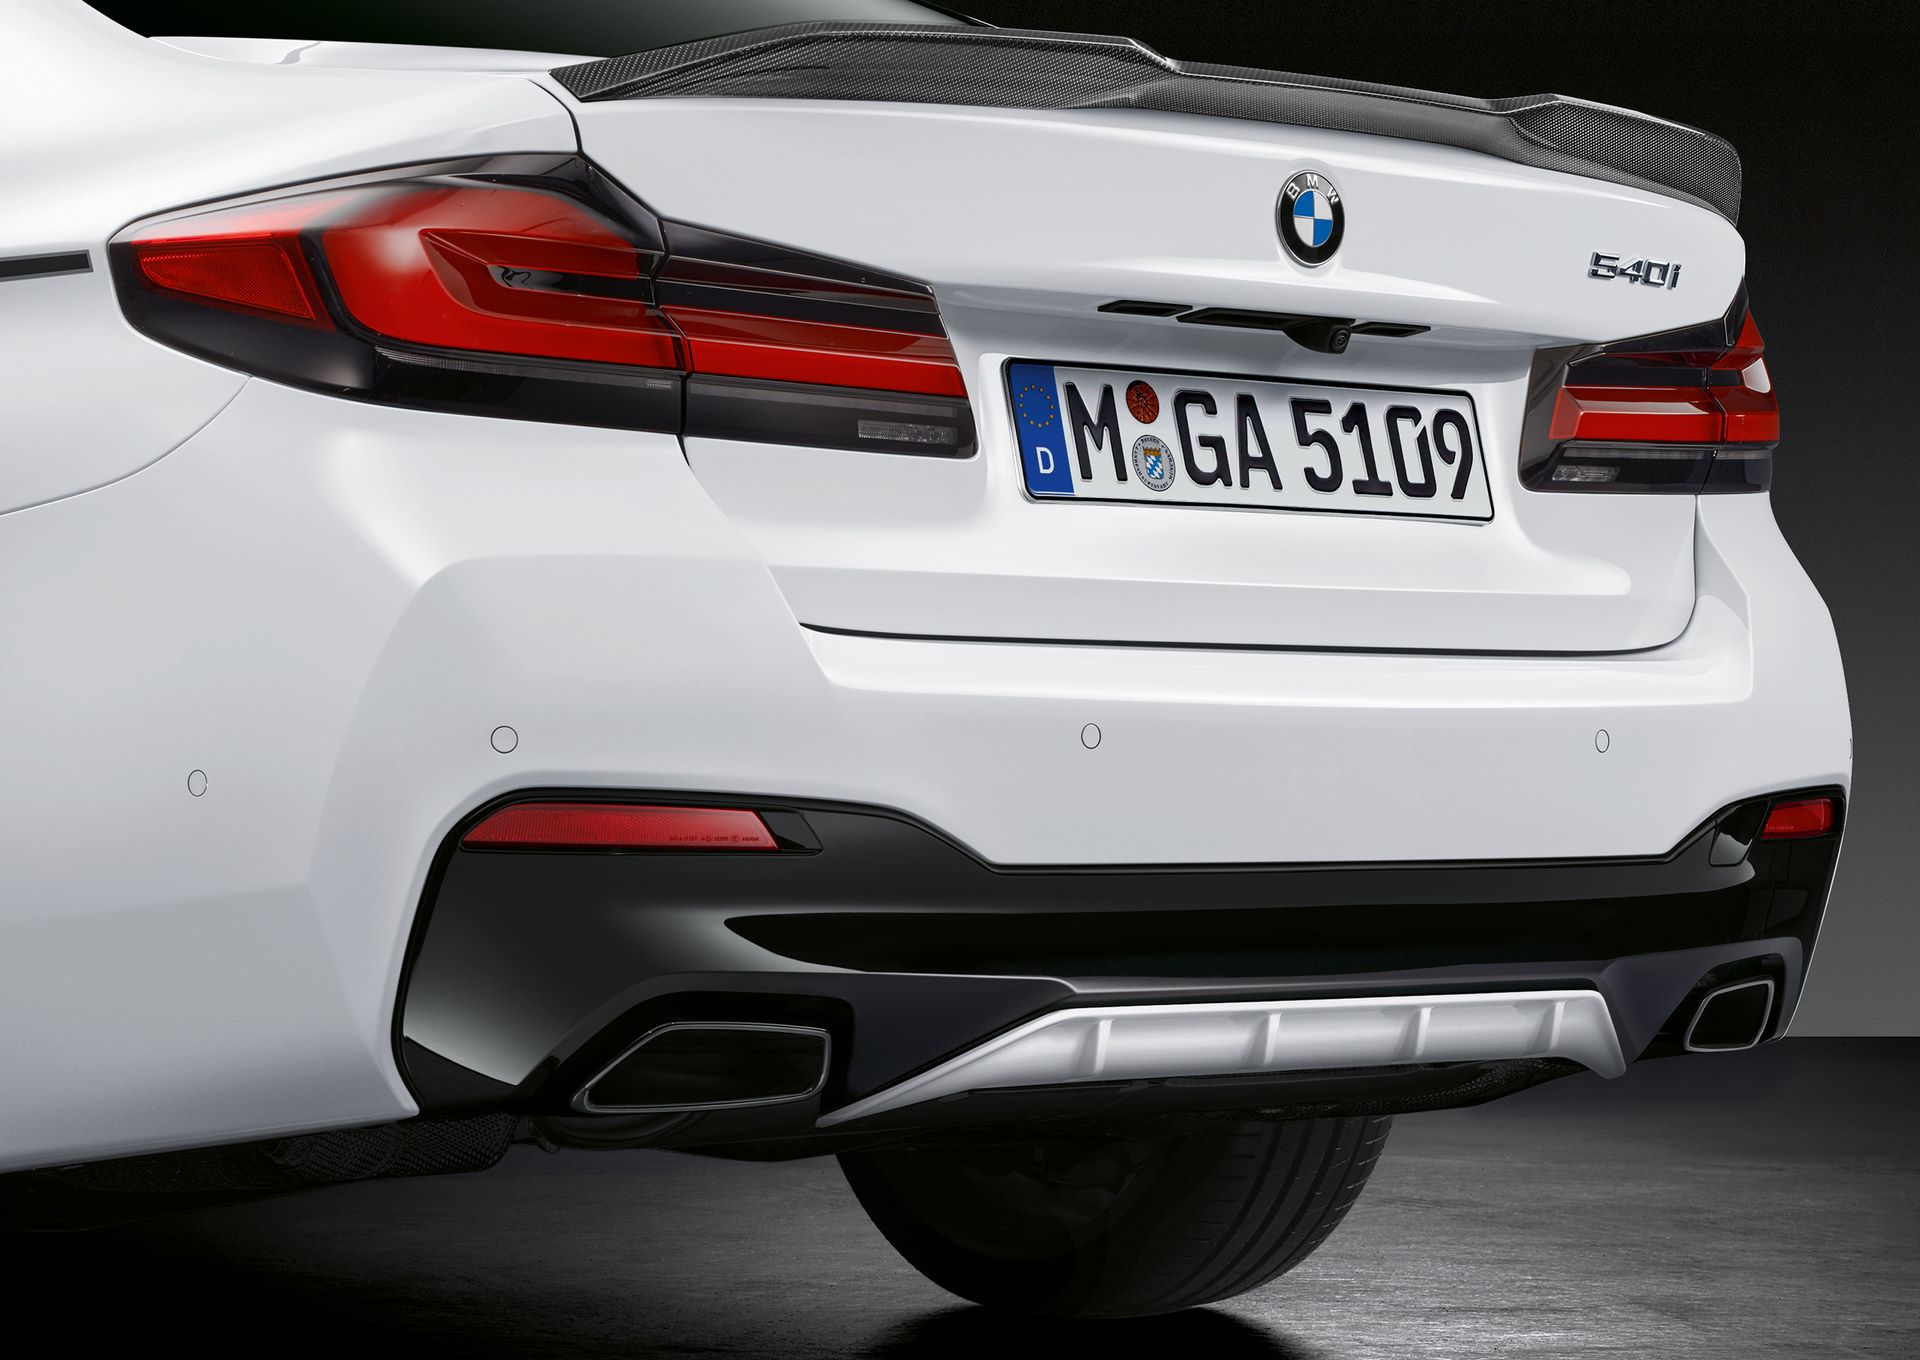 BMW-M-Performance-Parts-for-5-Series-M5-and-M5-Competition-6